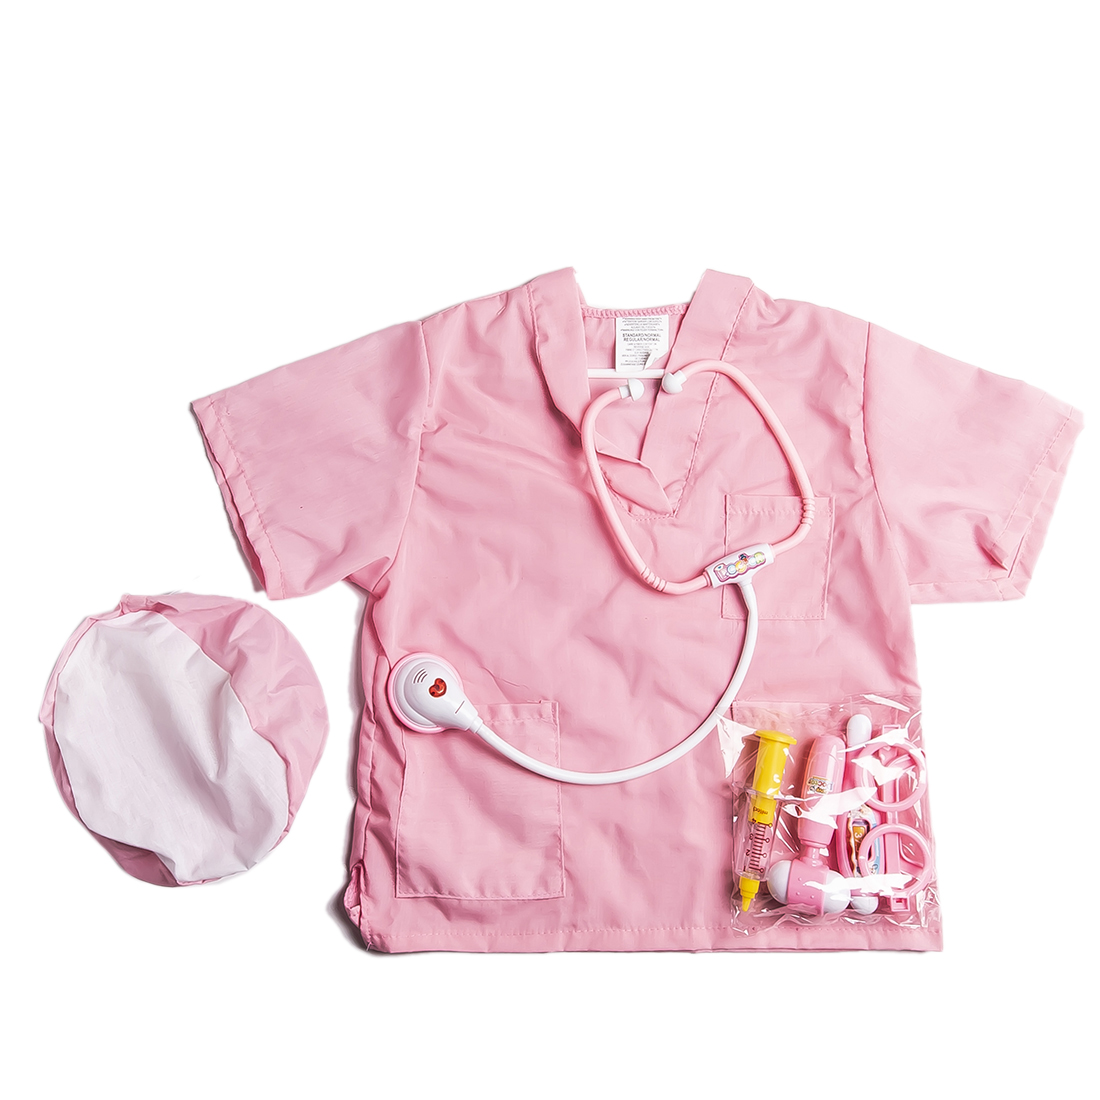 Children Pretend Play Toys Nurse Surgery Doctor Role Play Fancy Dress Costume Set for Boys Girls Learning Playing Interest Kit image